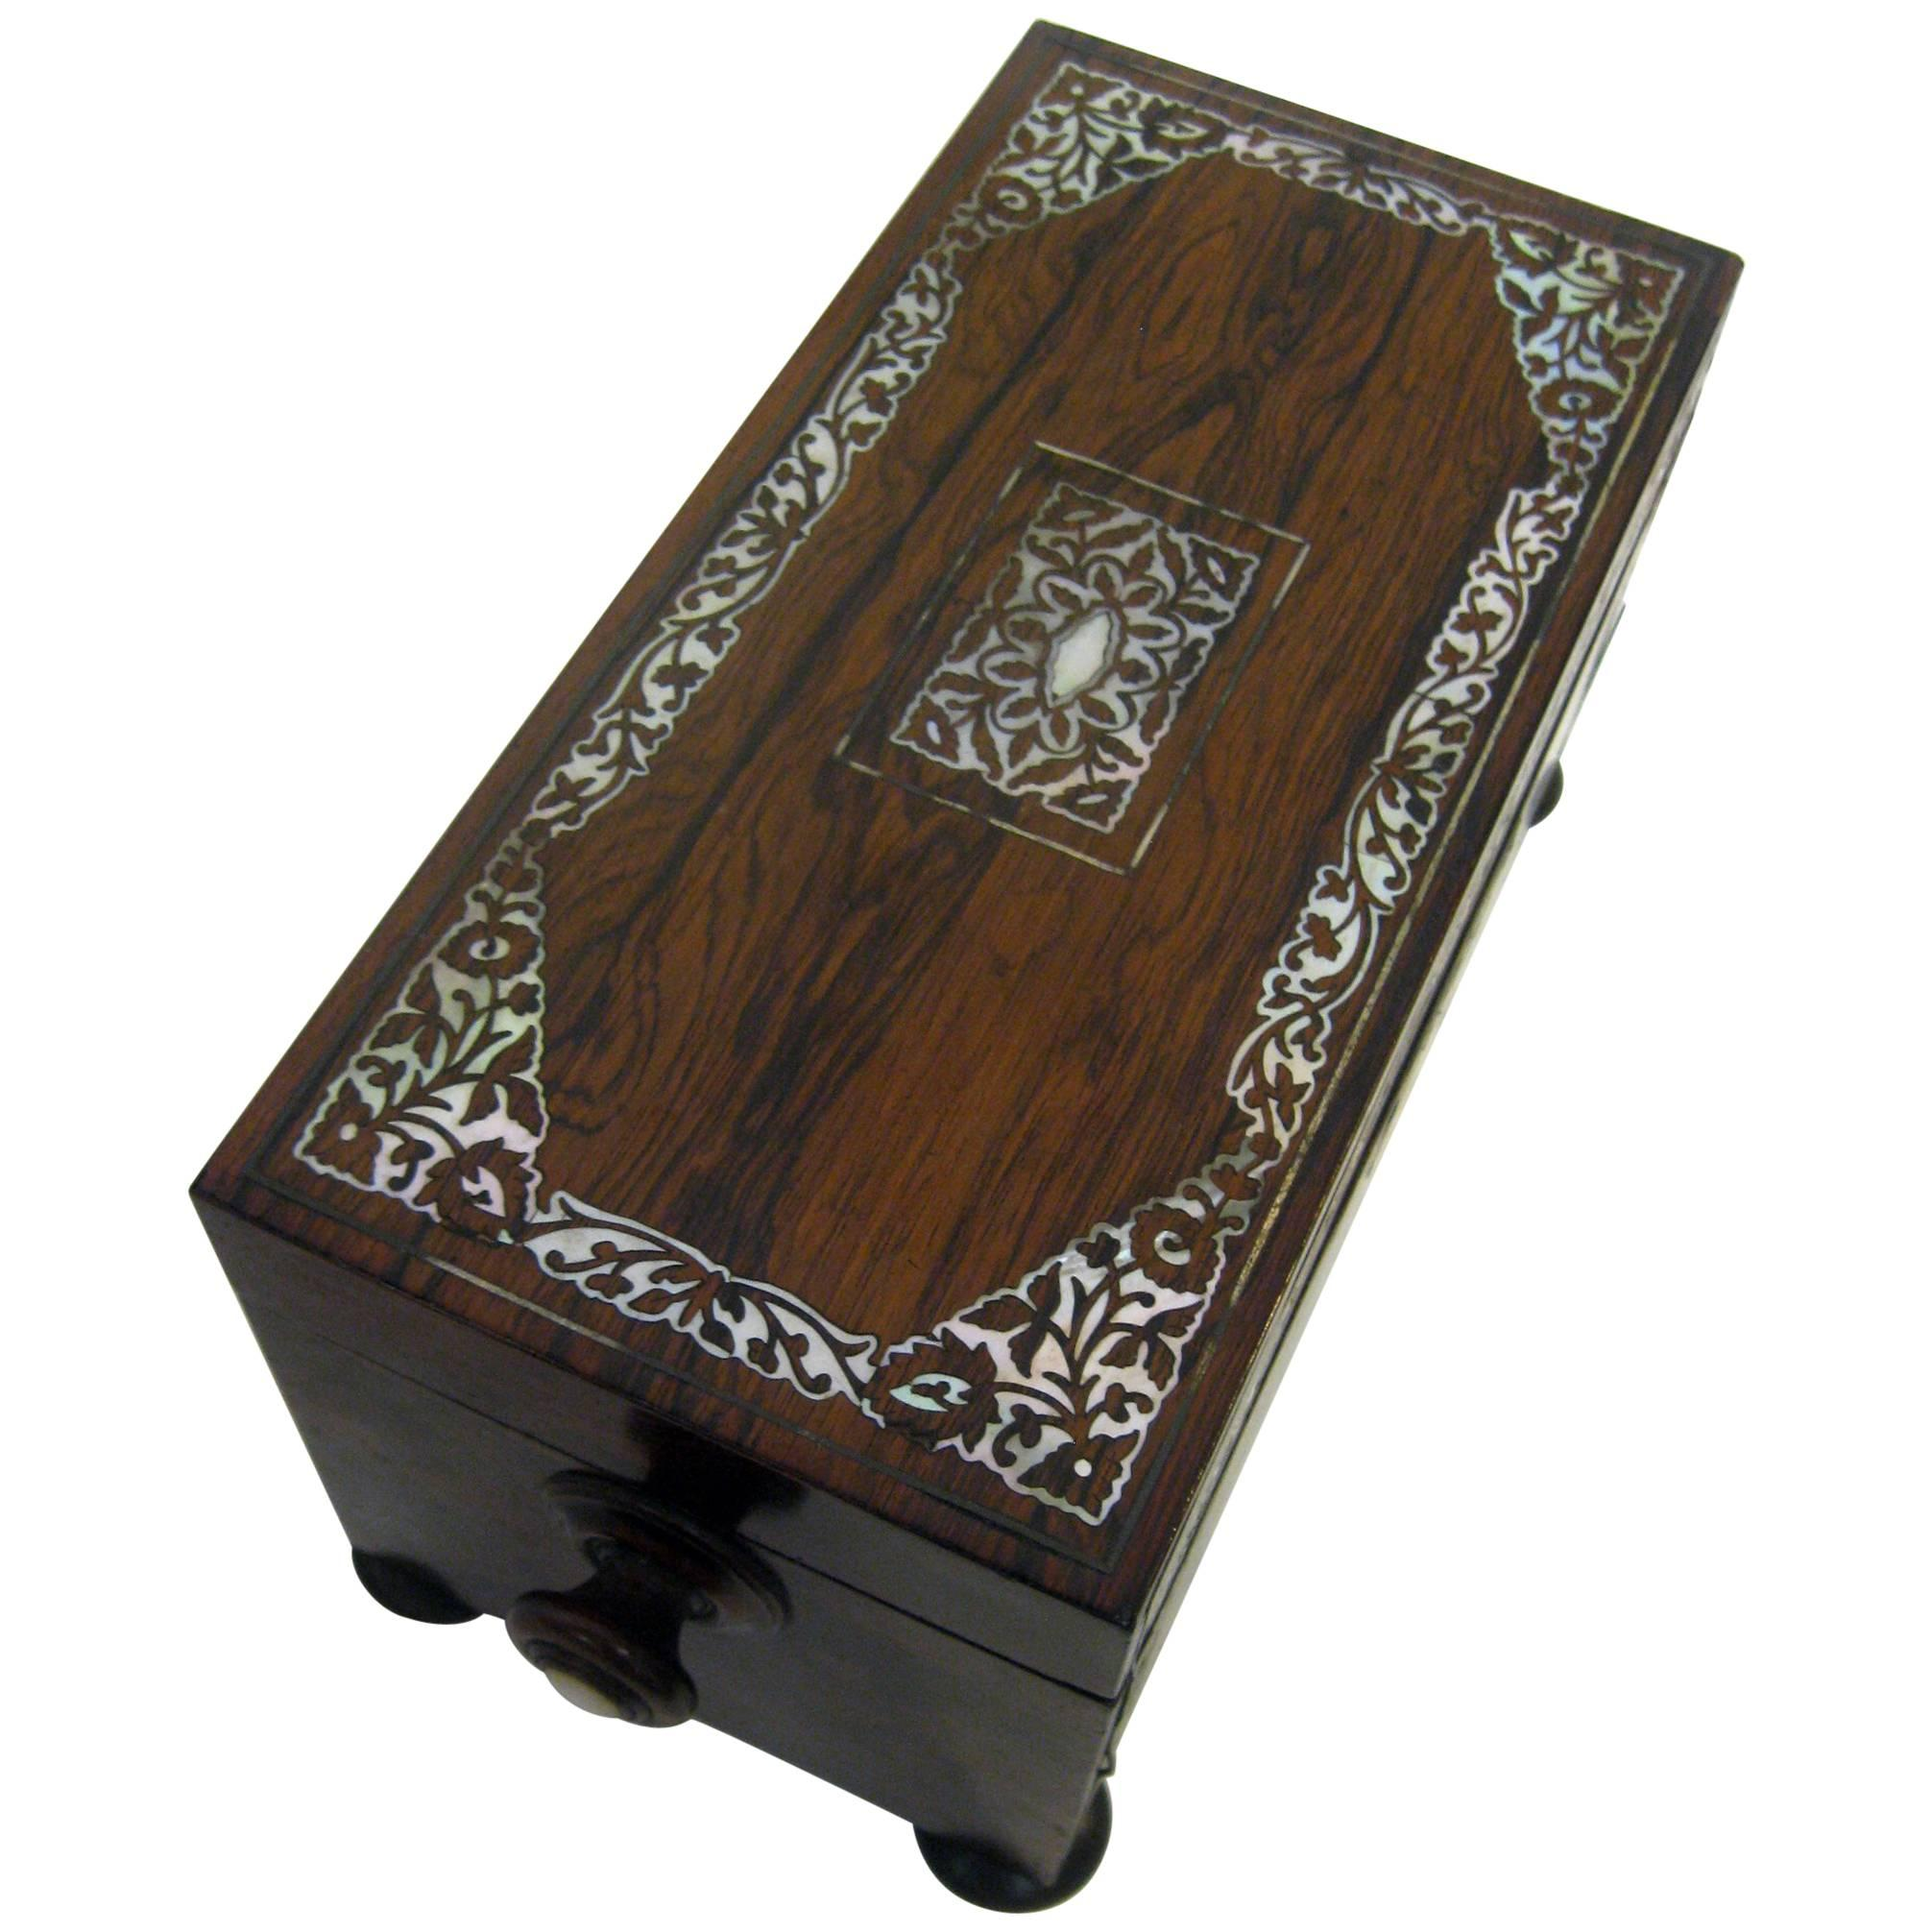 19th century English Rosewood Tea Caddy with Mother of Pearl Inlay